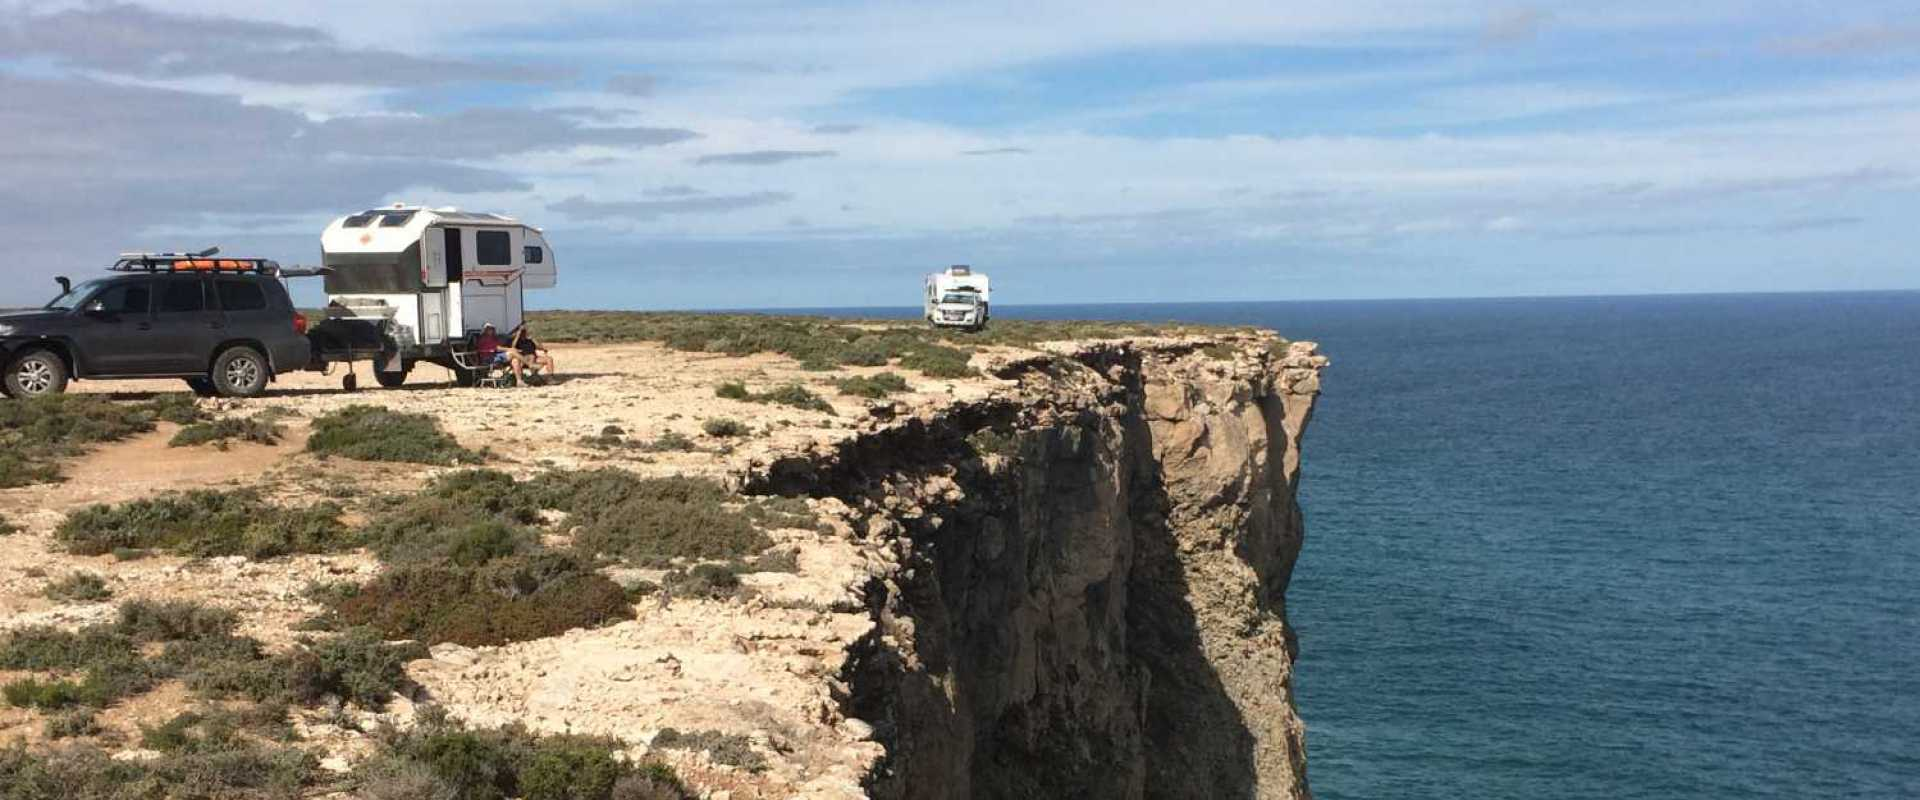 Great Australian Bight SA